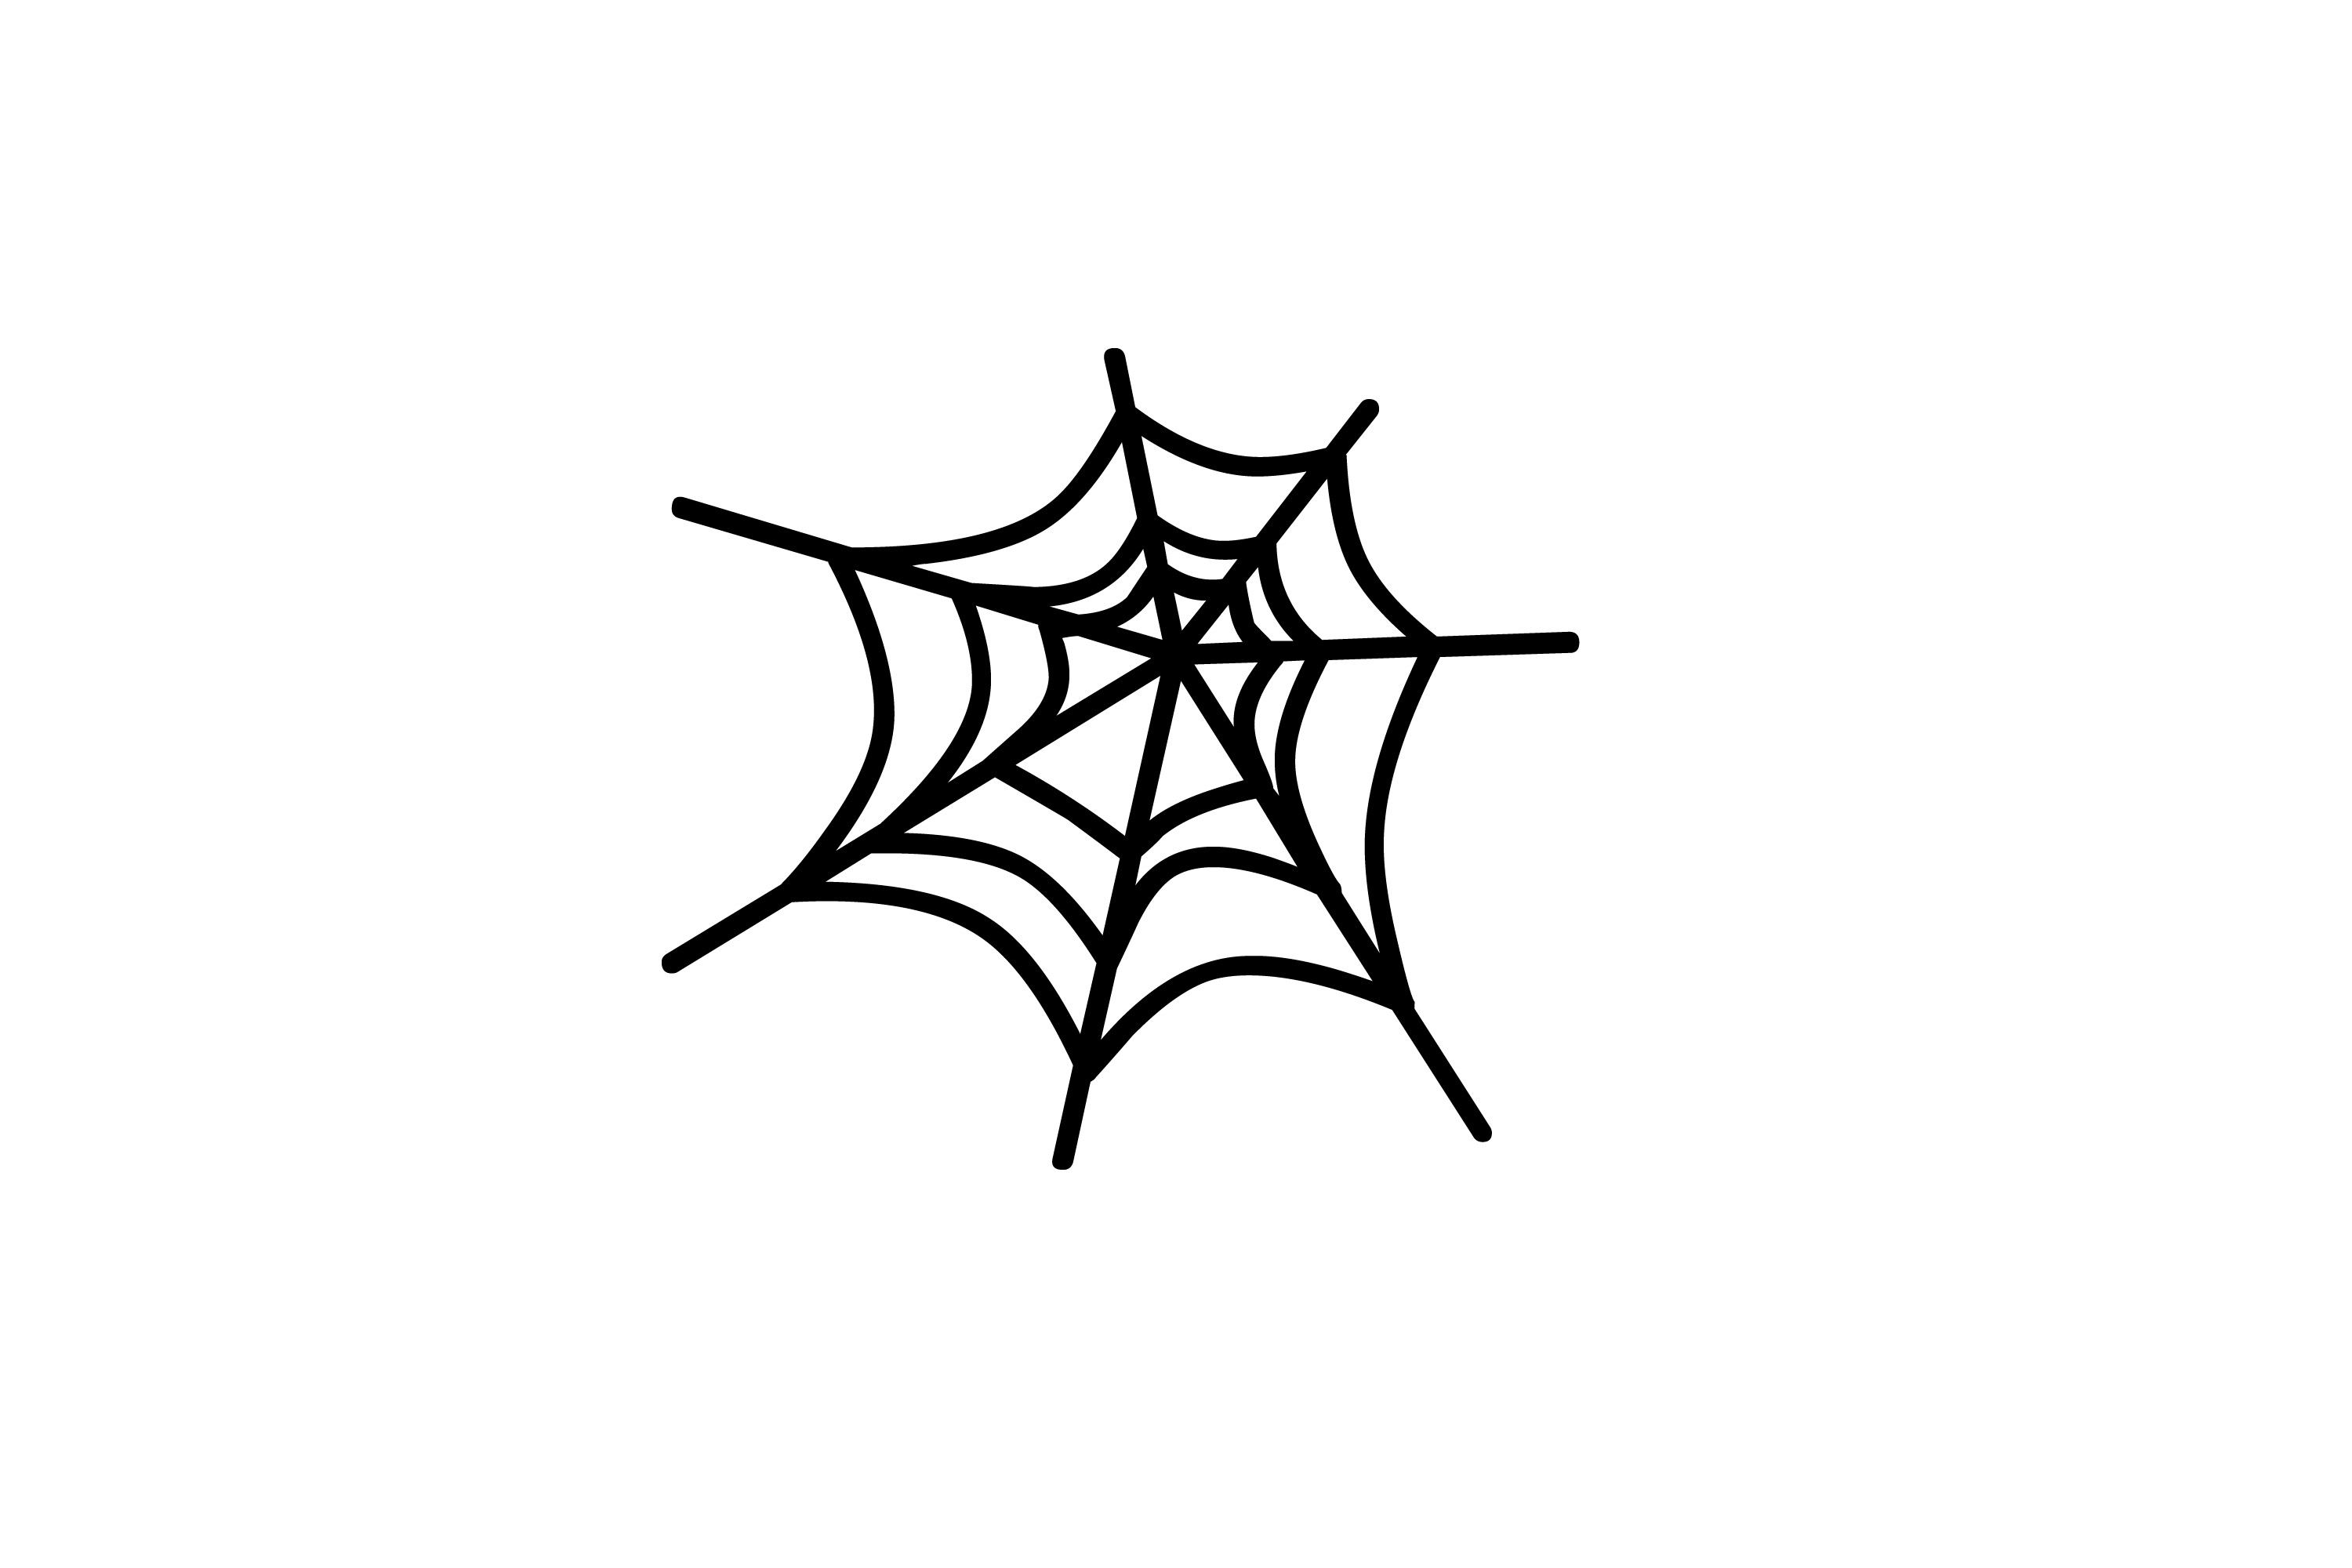 image of spiders web creepyhalloweenimages cobweb spider clipart Skull Clip Art